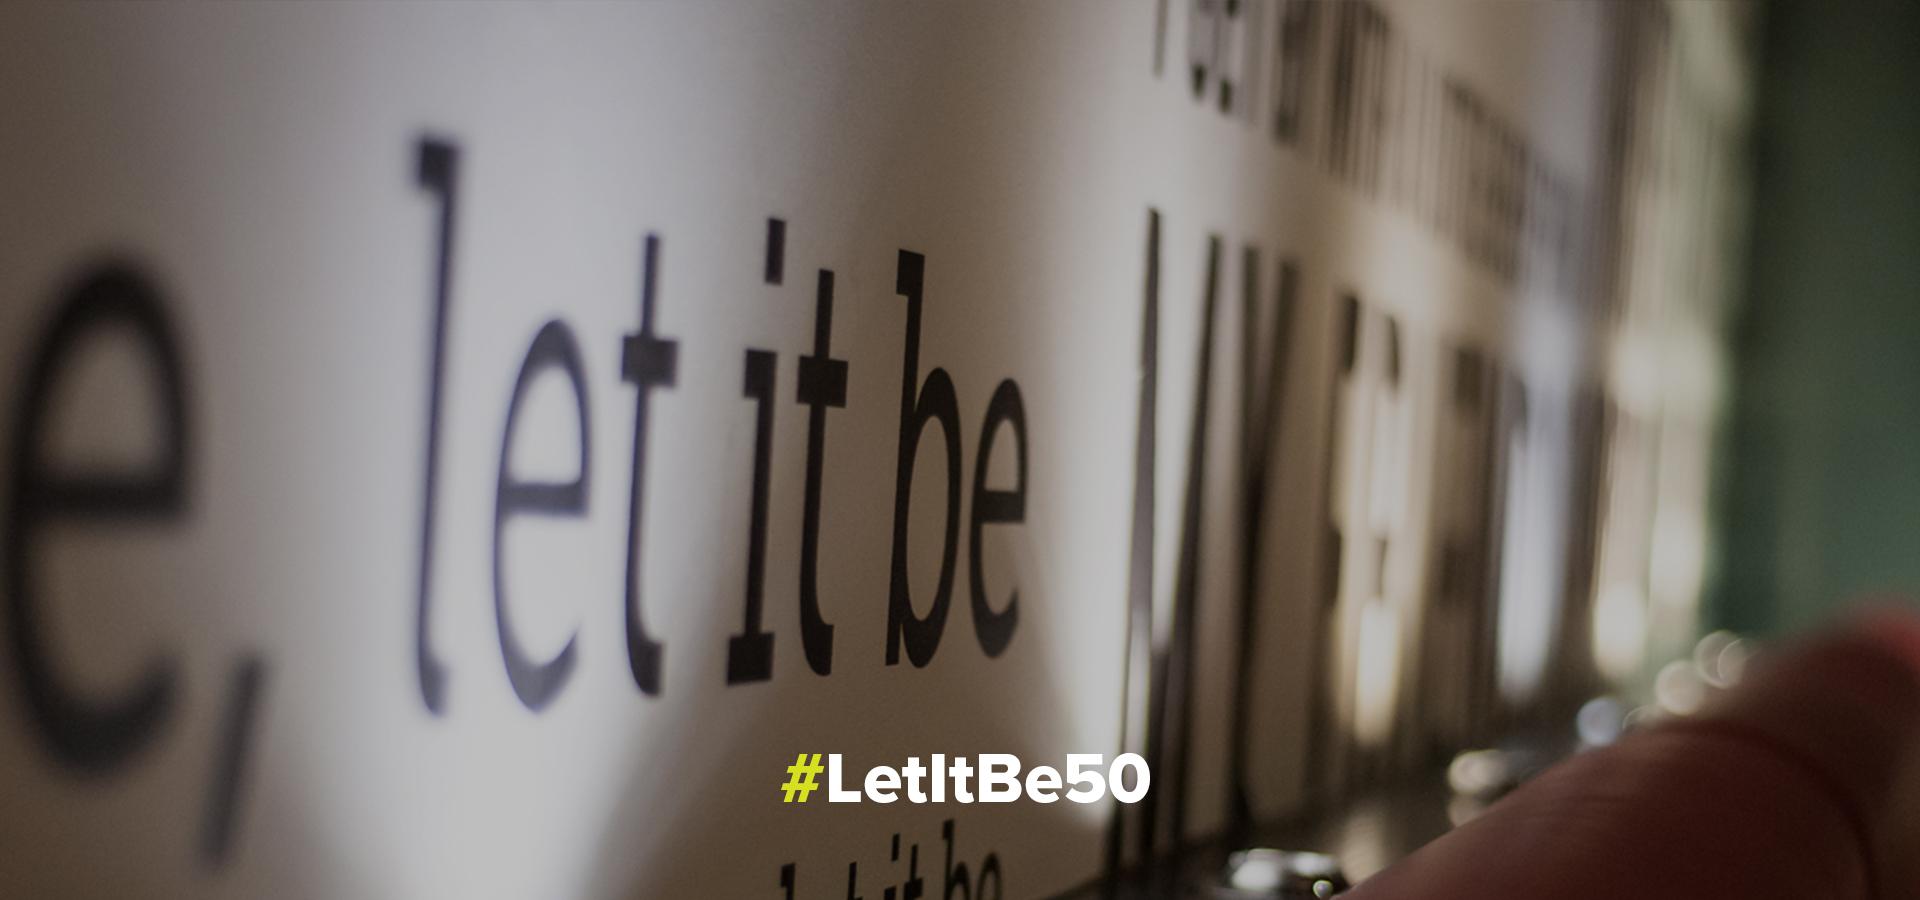 'The Long And Winding Road' by Peter Hooton - #LetItBe50